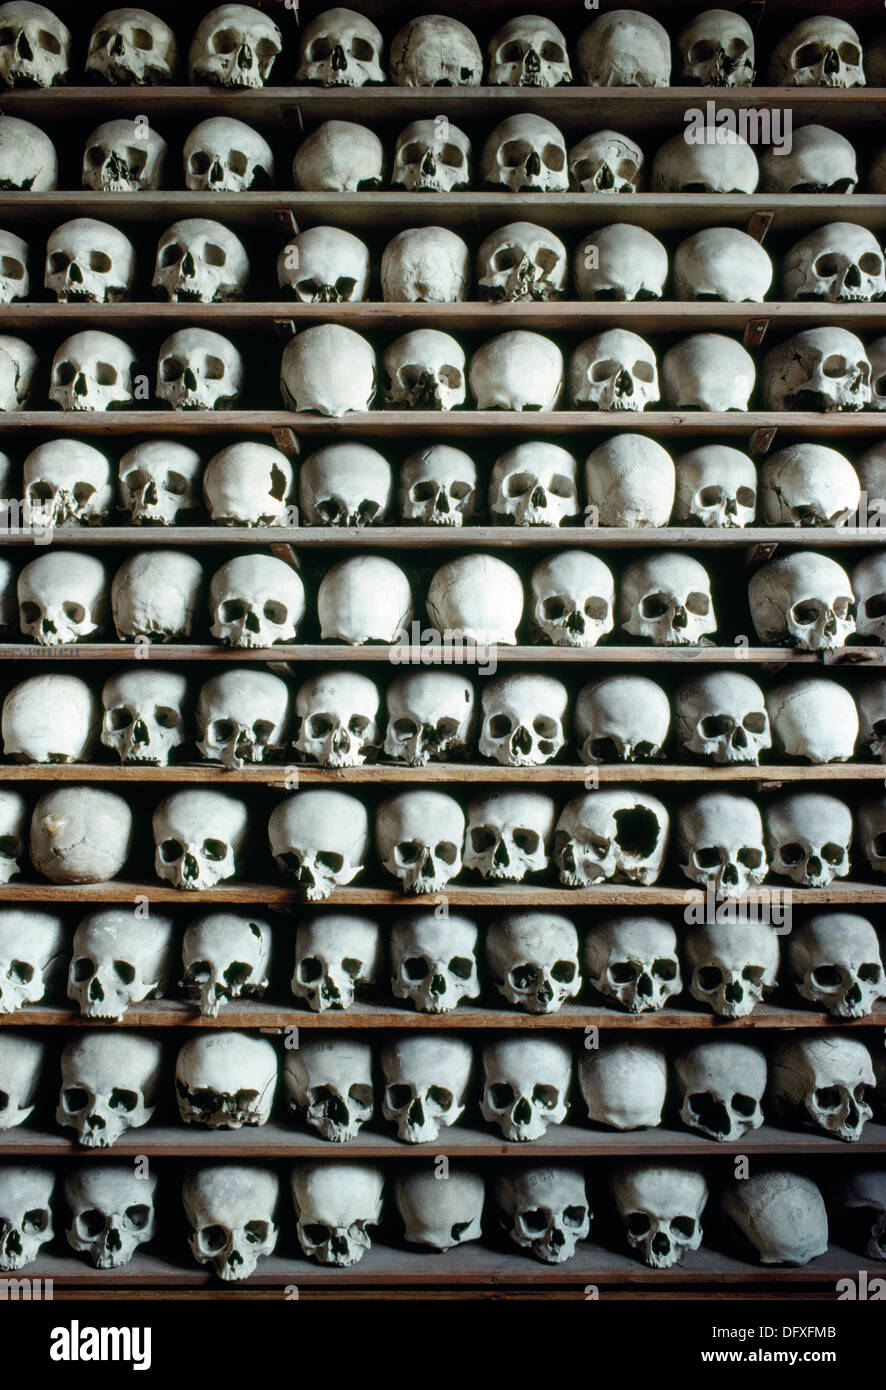 Part of a collection of some 2000 human skulls stacked in the crypt of St Leonard's Church, Hythe, Kent, during the period AD1200-1500. - Stock Image